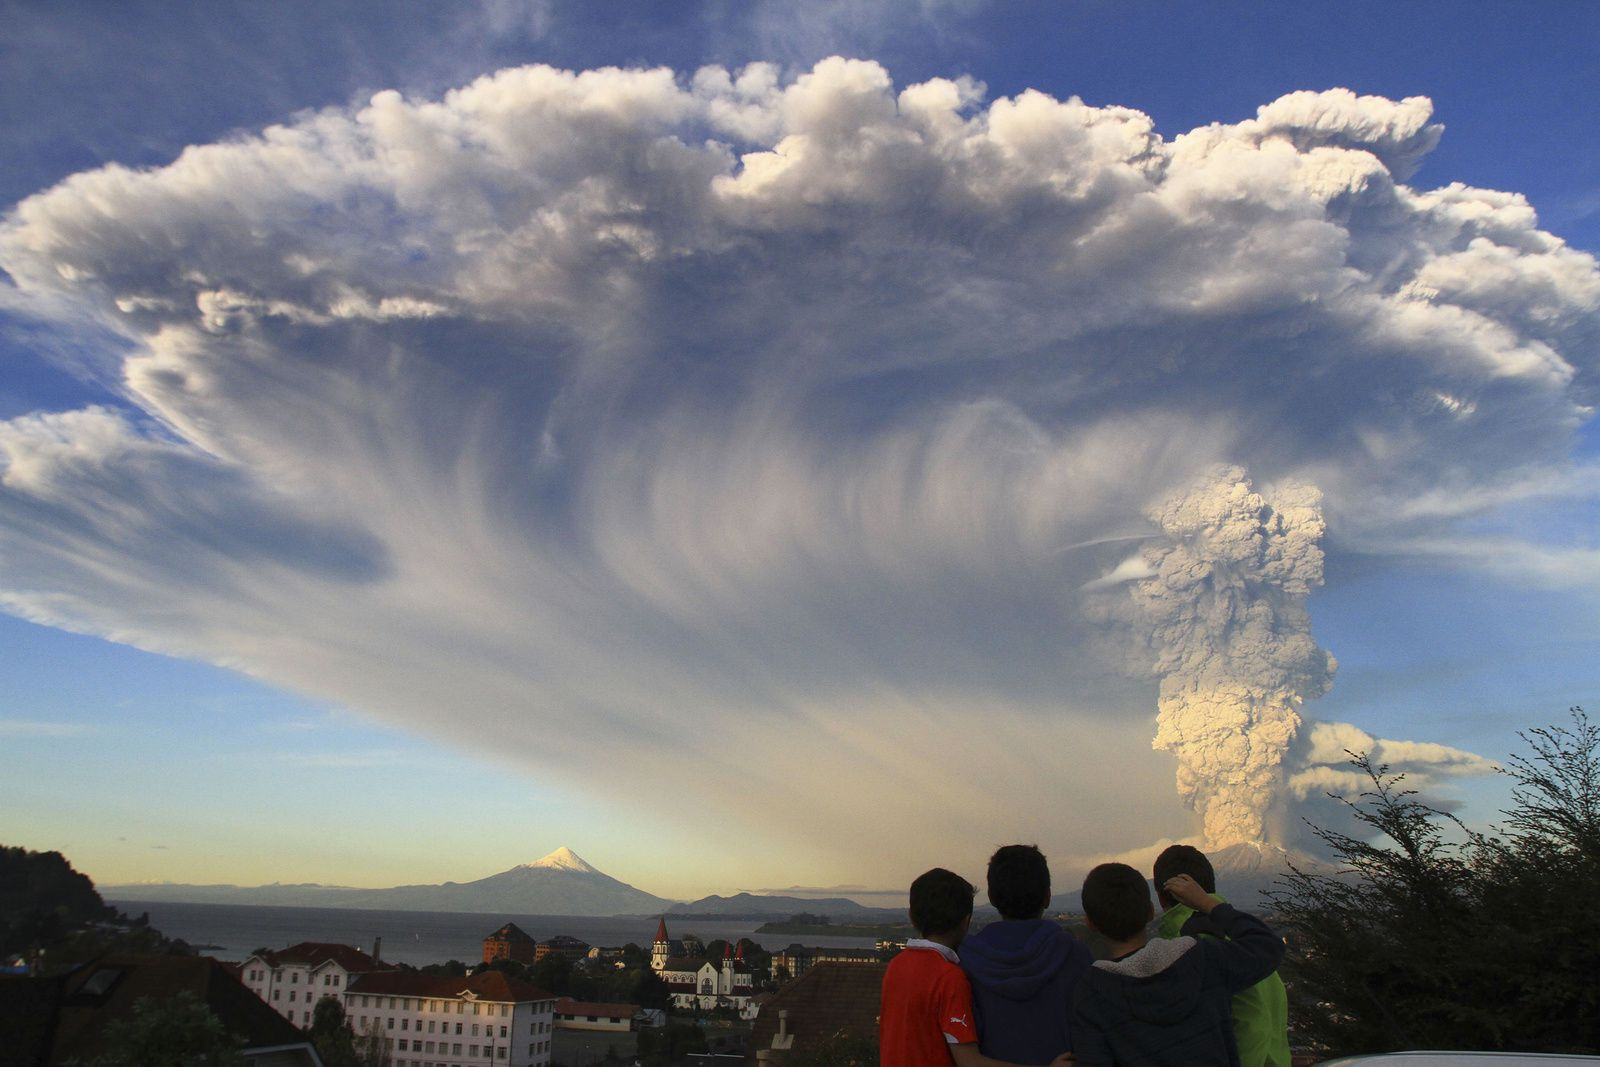 The last eruption of the Calbuco on 22/04/2015 - NBC News archives